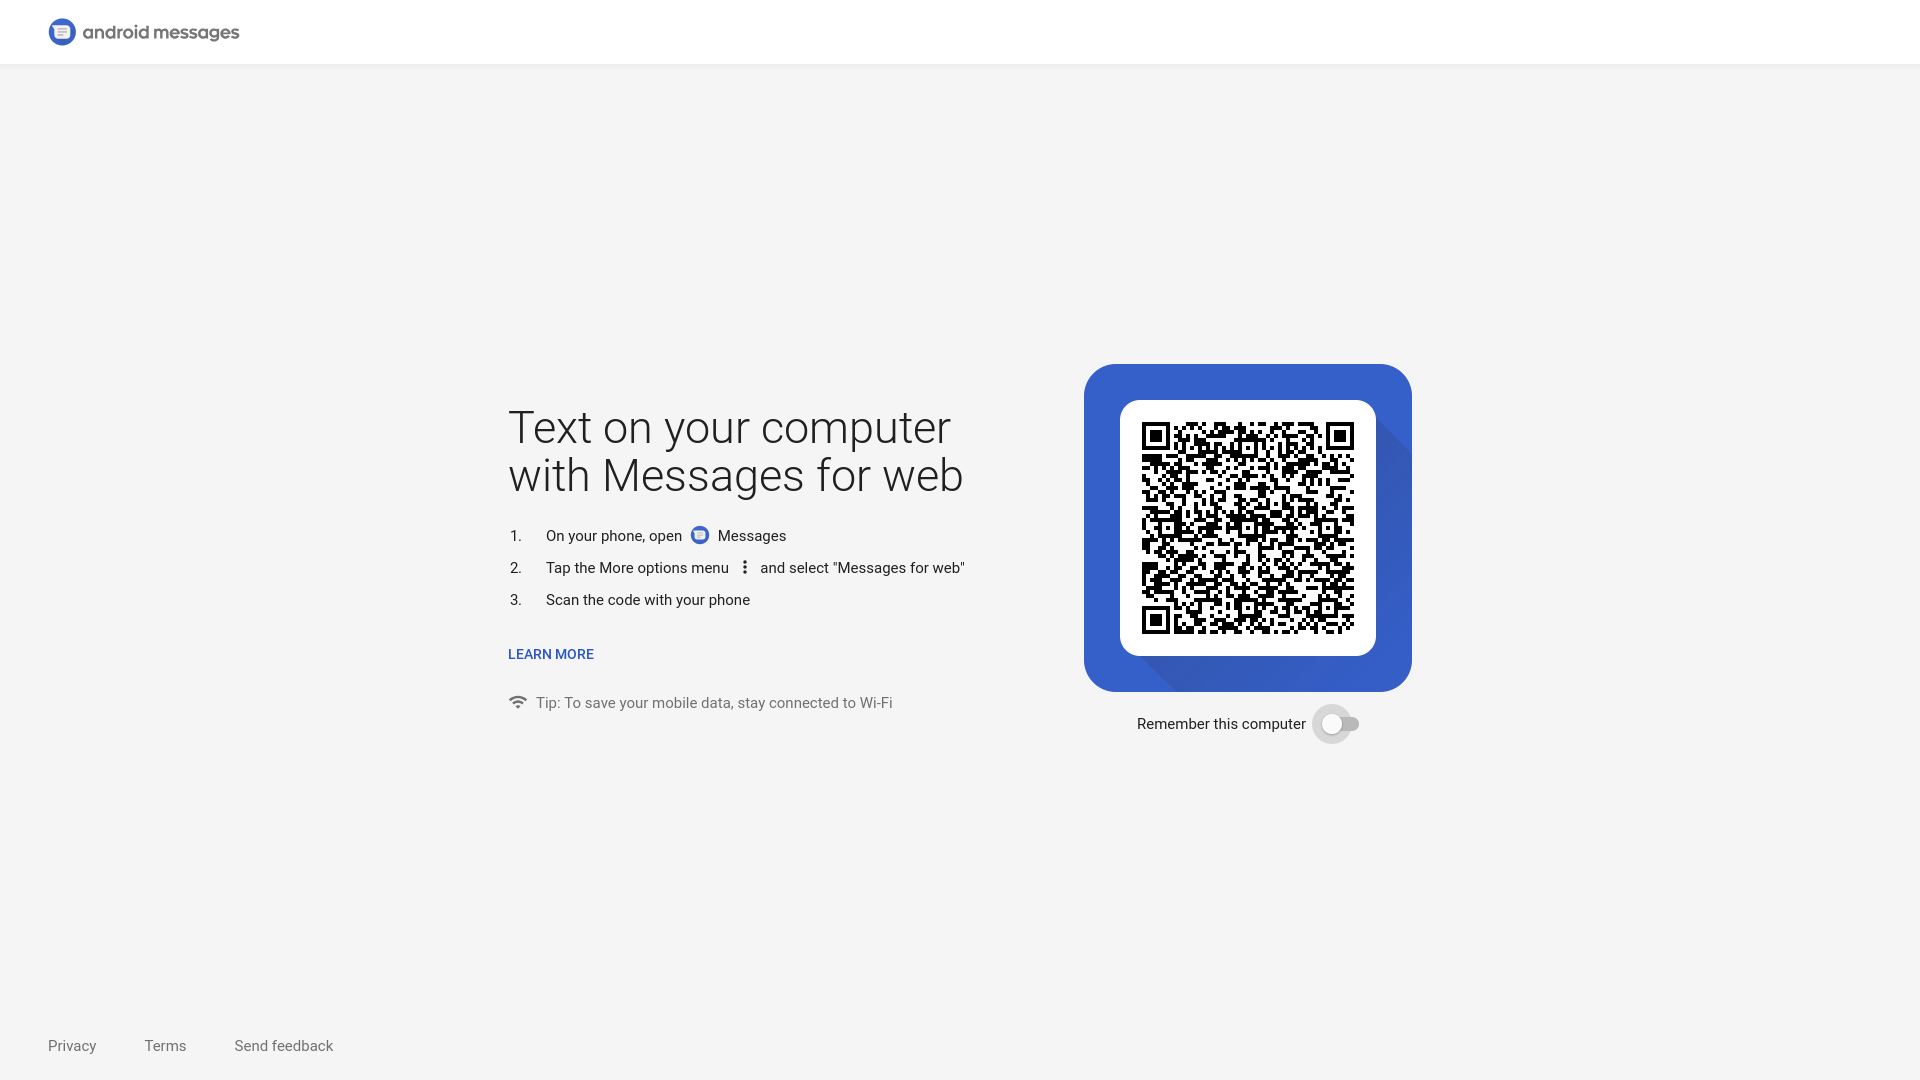 Google brings Android messages to the web